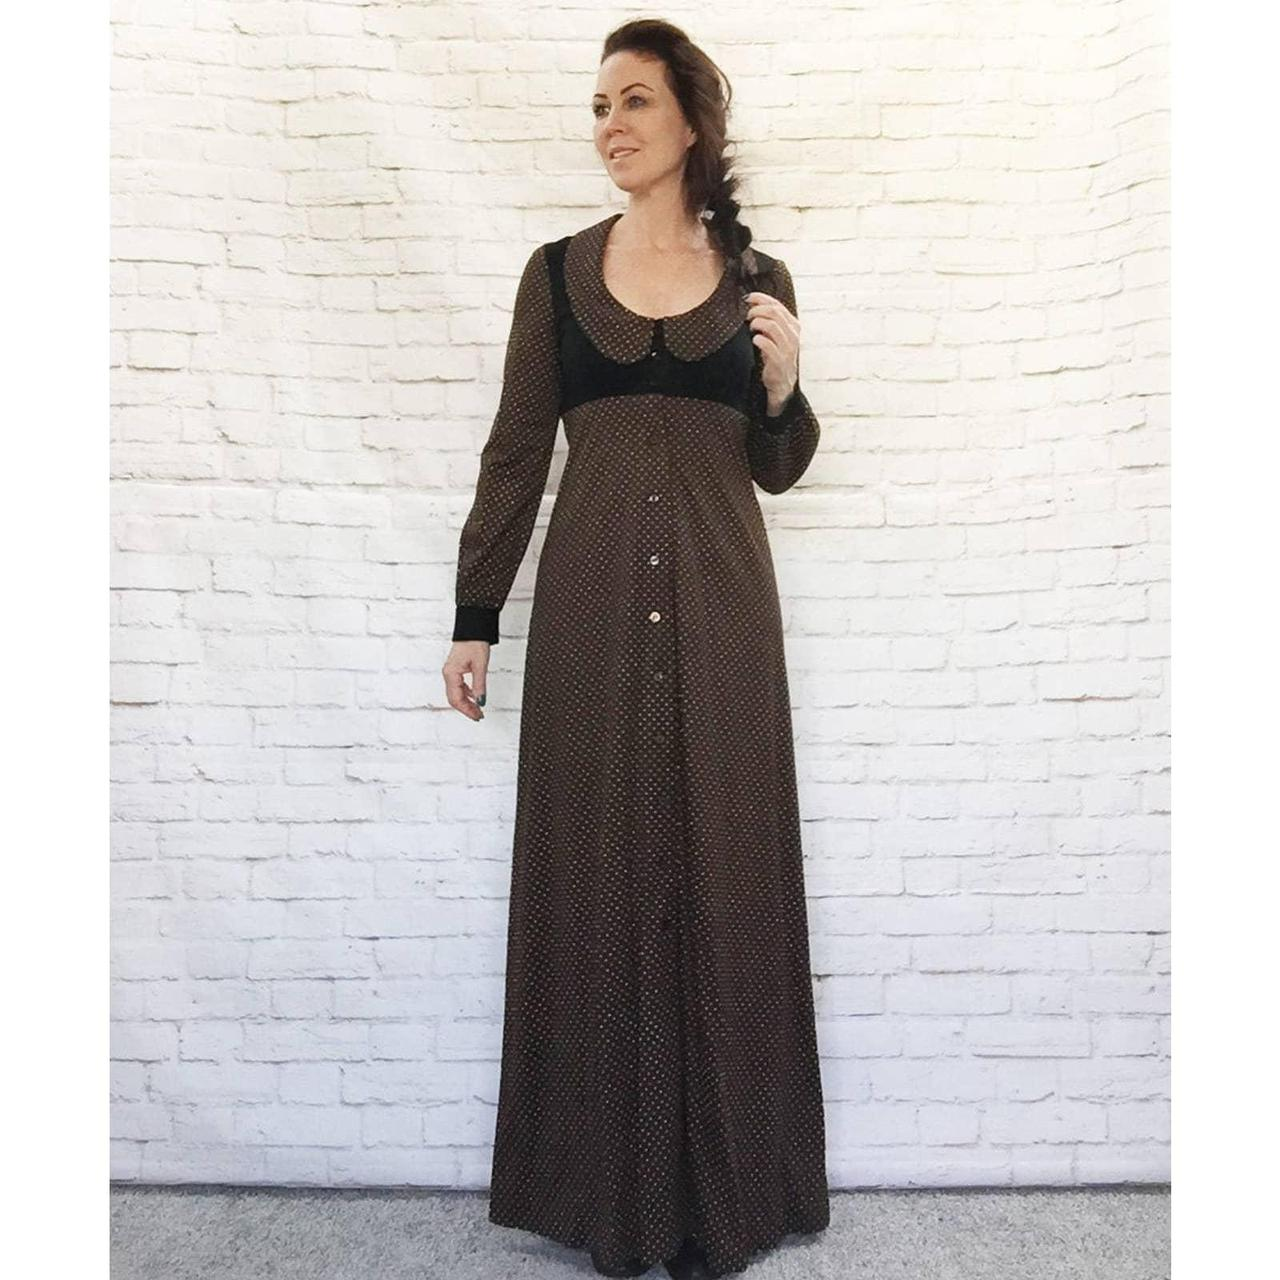 Product Image 1 - Vintage dress from the 1970s